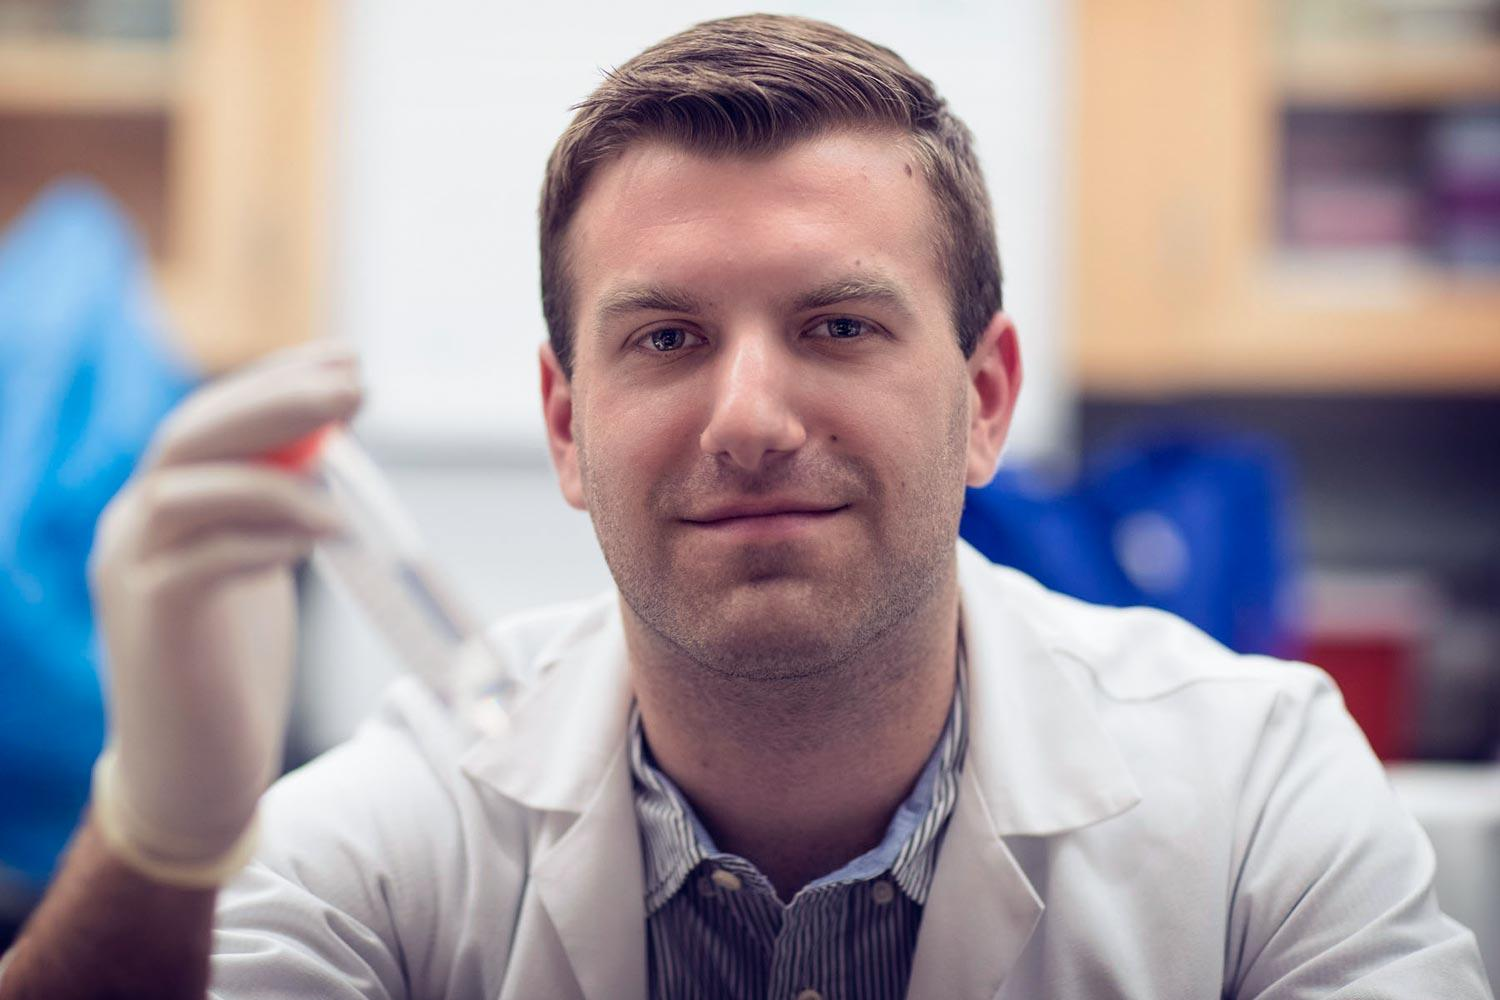 Jesse Persily used a Harrison Undergraduate Research Award to study pancreatic cancer in mice.